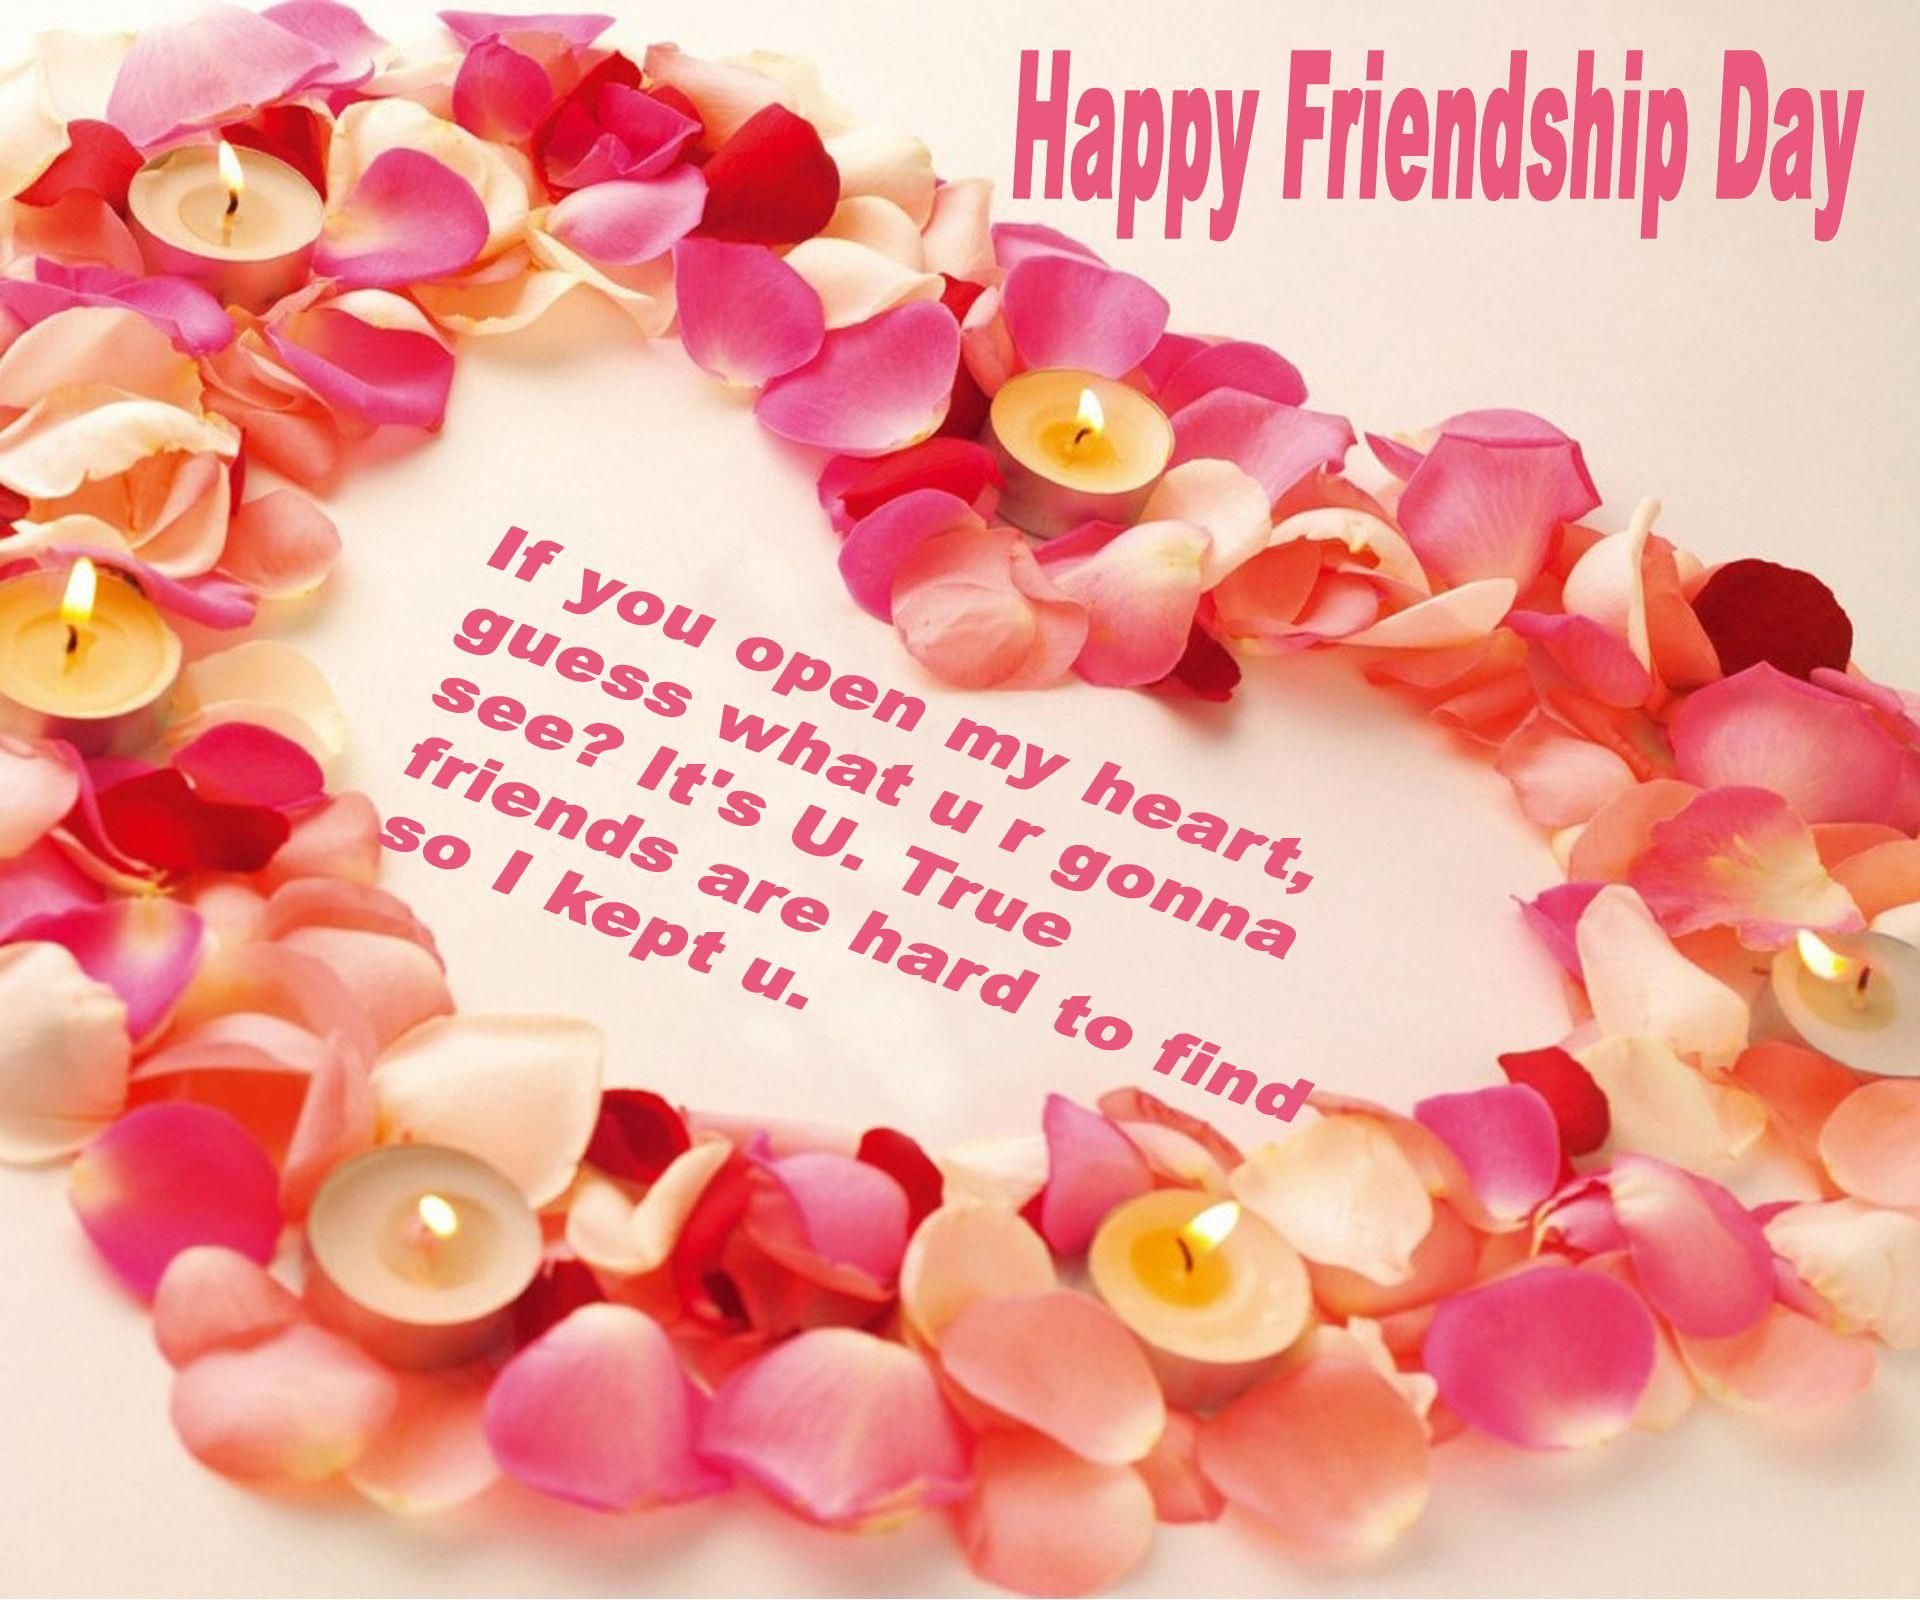 Happy Friendship Day Red Rose Wallpaper Happy Friendship Day Friendship Day Wishes Friendship Day Images Friendship rose day images for friends